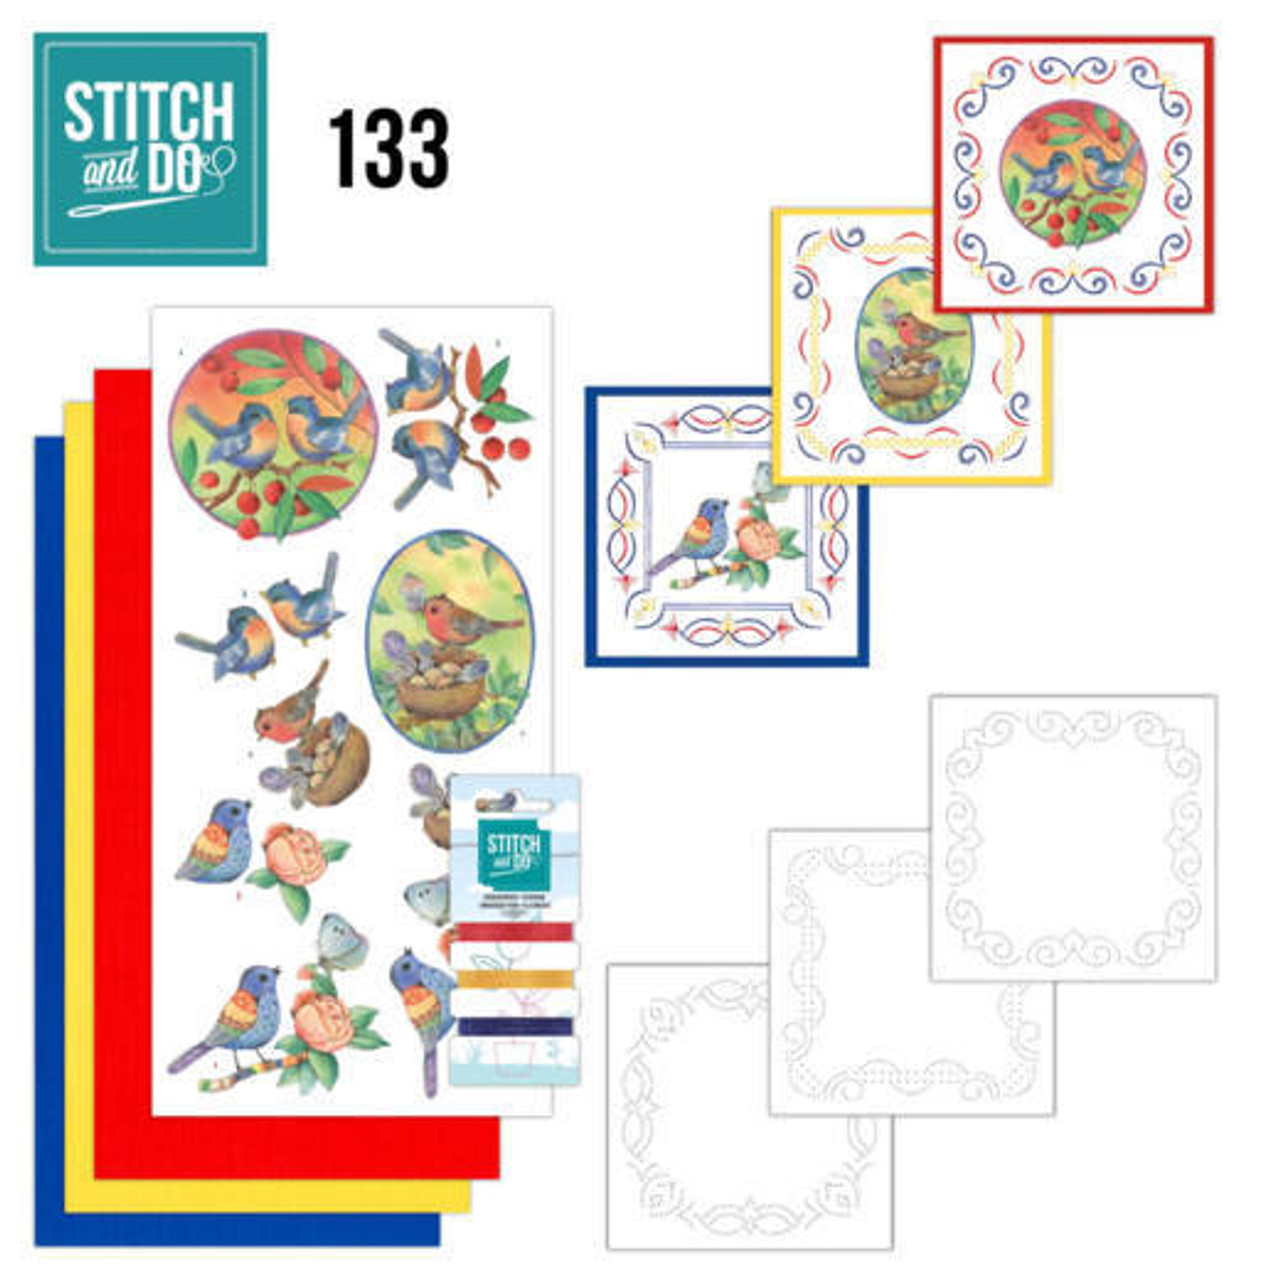 Stitch and Do 133 - Card Embroidery Kit - Blue Birds